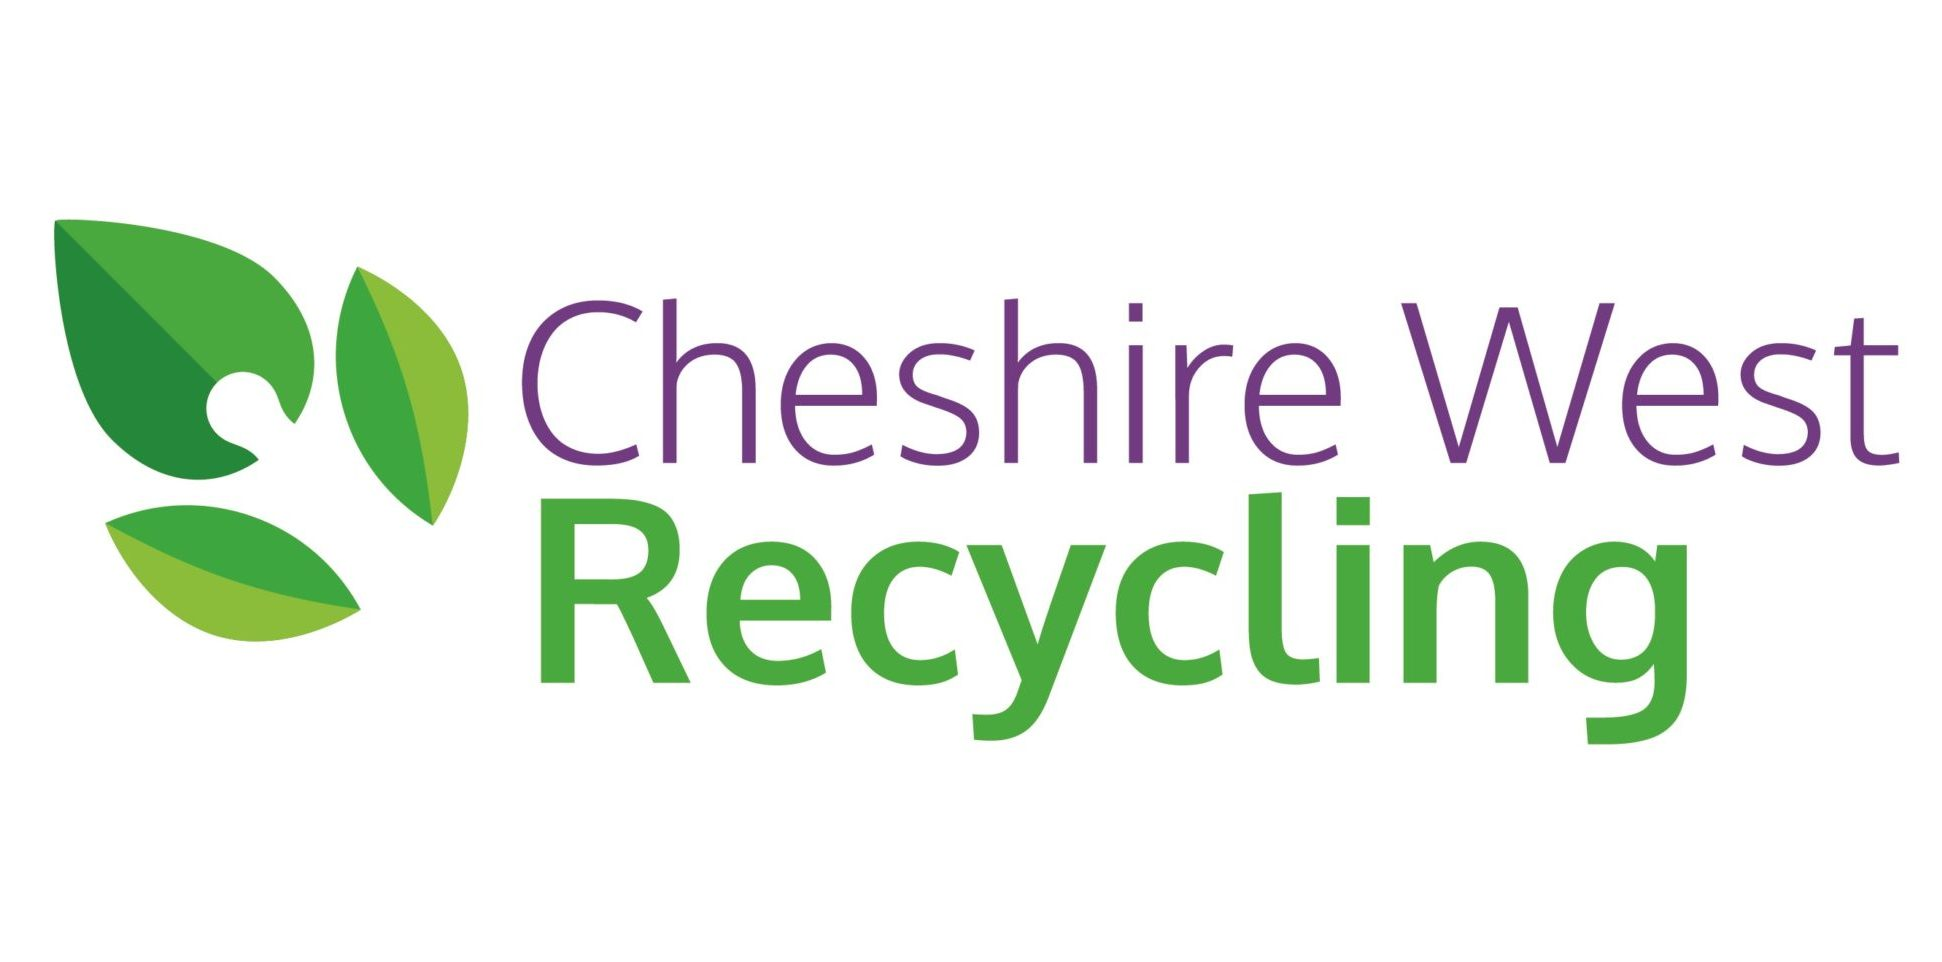 Cheshire West Recycling